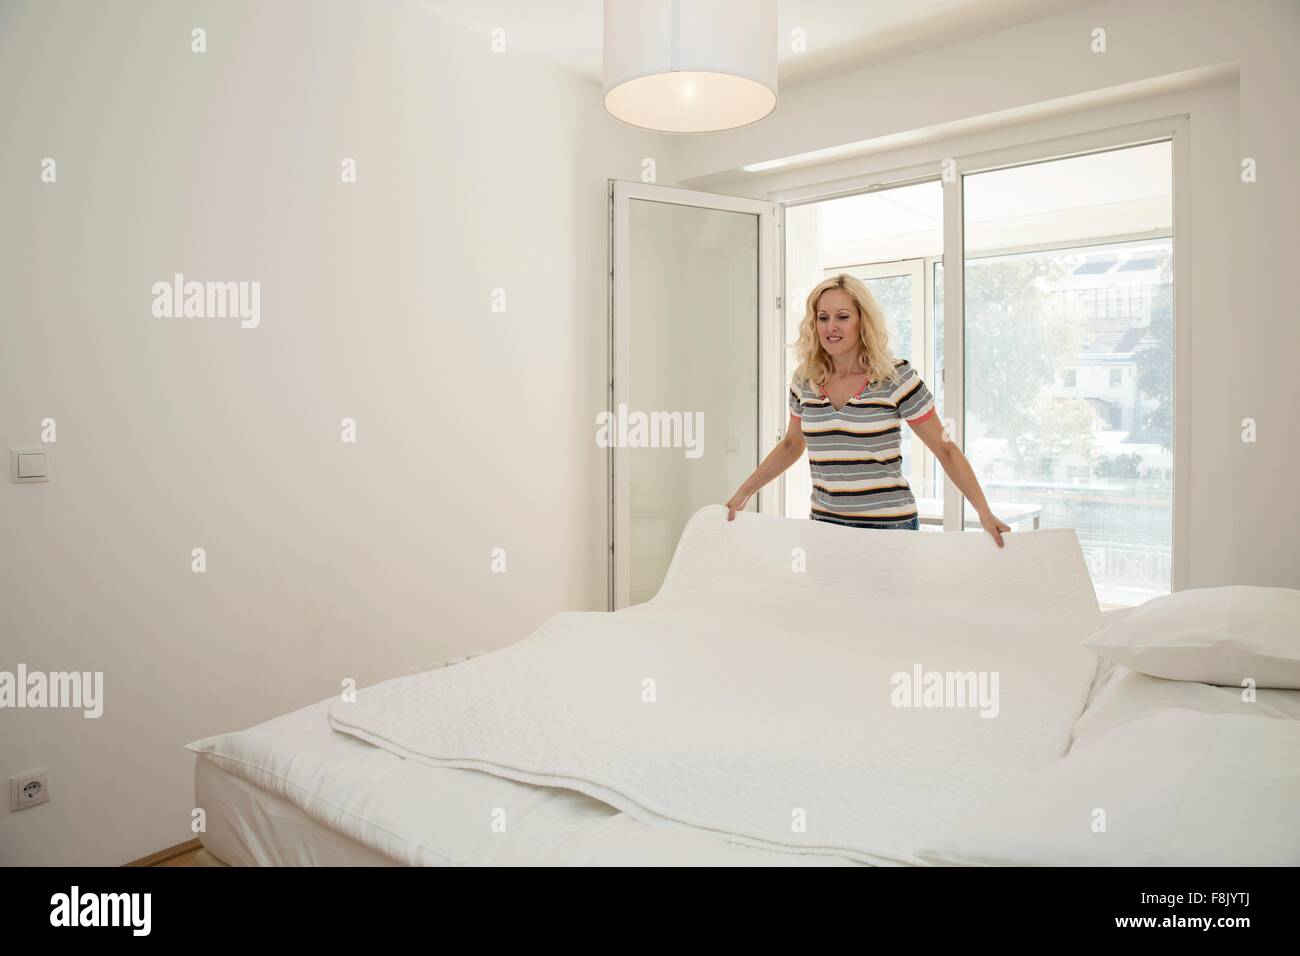 Mature woman in bedroom holding blanket making bed - Stock Image